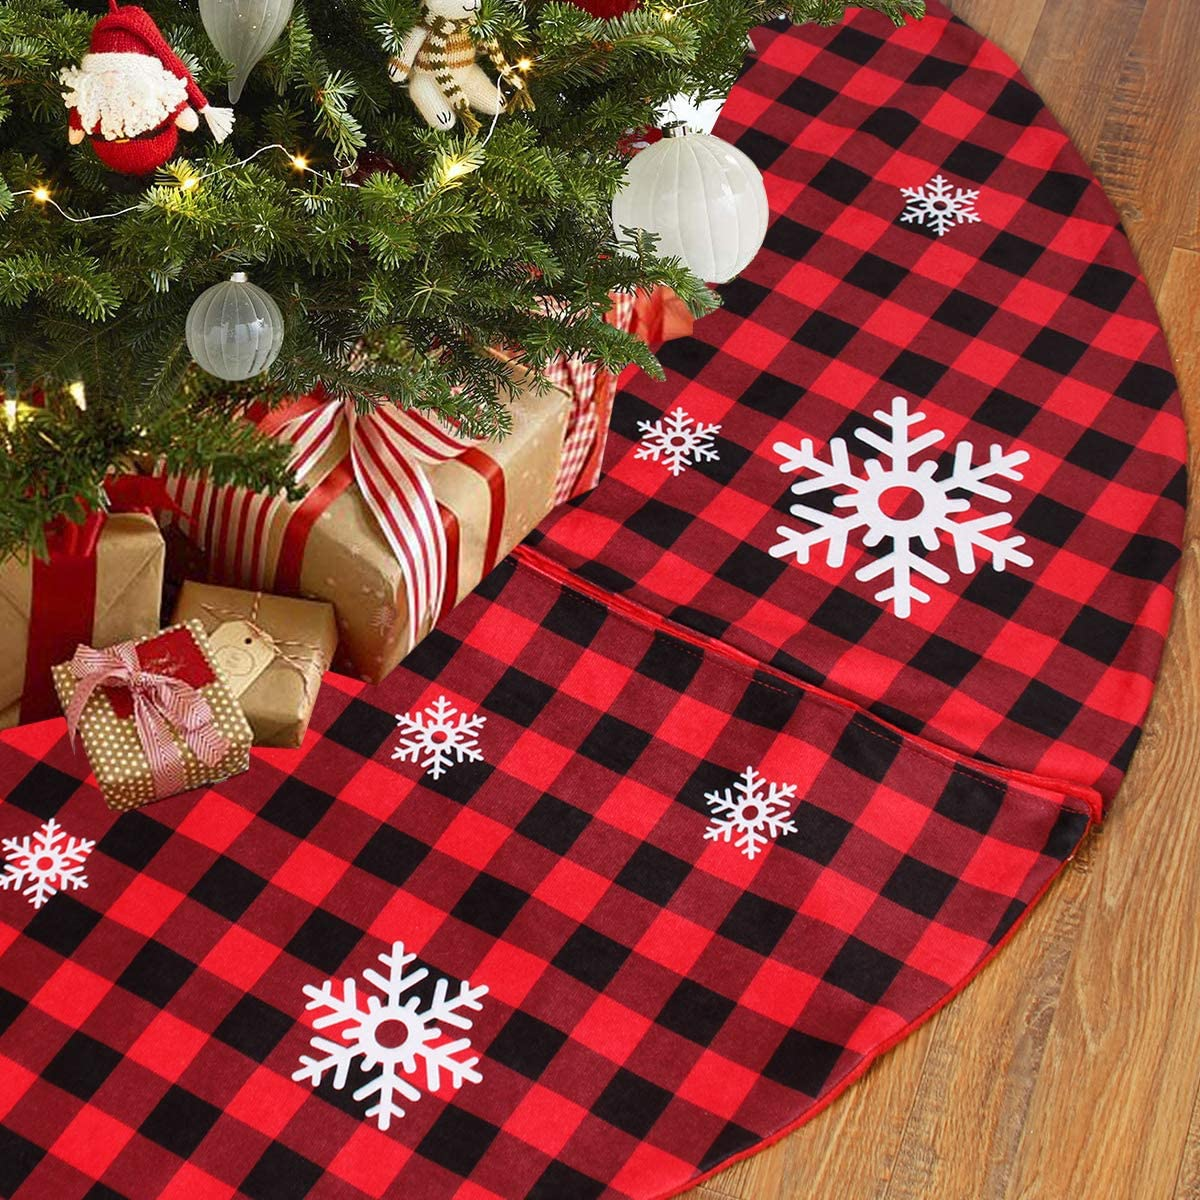 Christmas Tree Skirt Red and Black Buffalo Check Plaid Tree Skirt with Snowflake Design, 48inch Double Layers Xmas Tree Skirt for Christmas Decorations, Winter New Year House Decoration Supplies